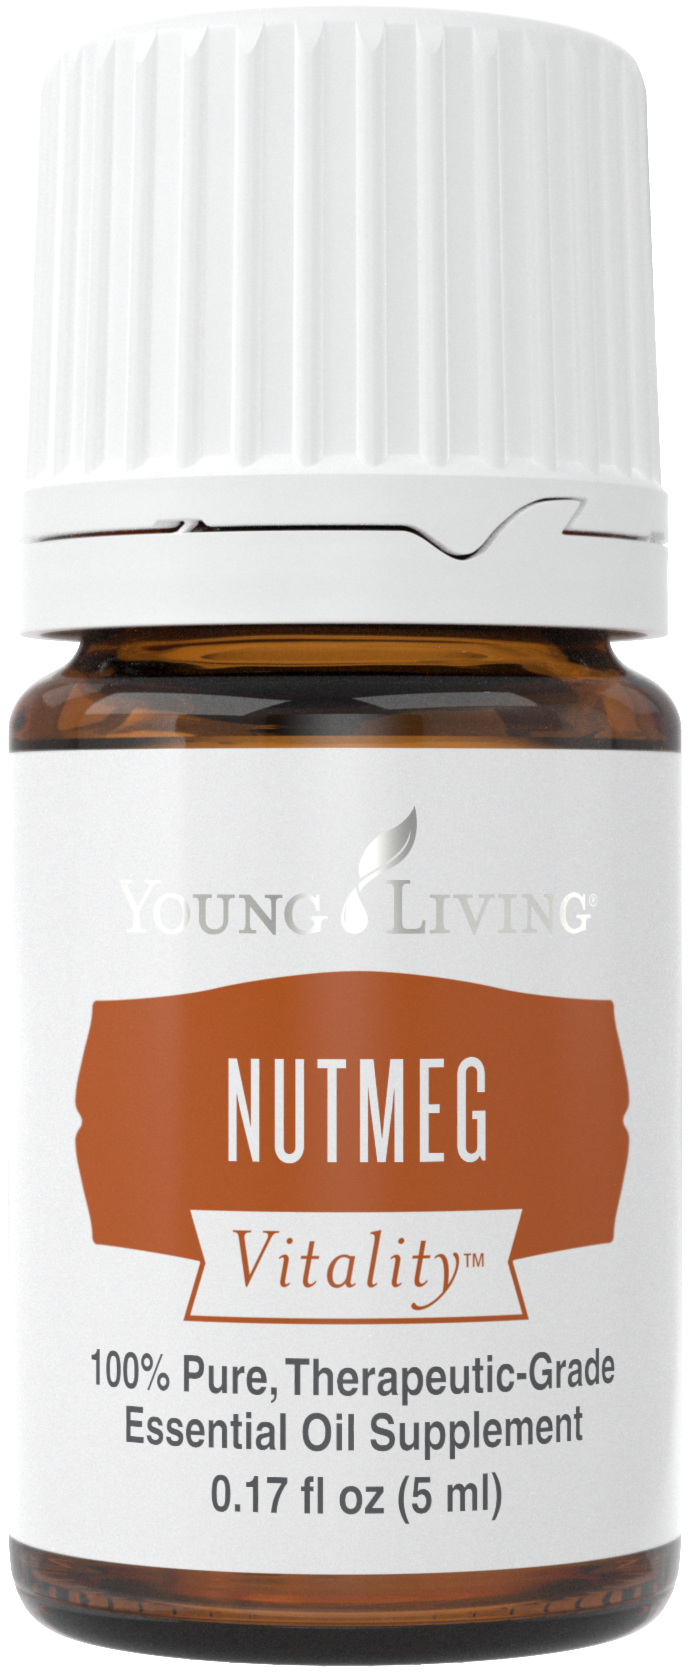 Nutmeg Vitality Essential Oils